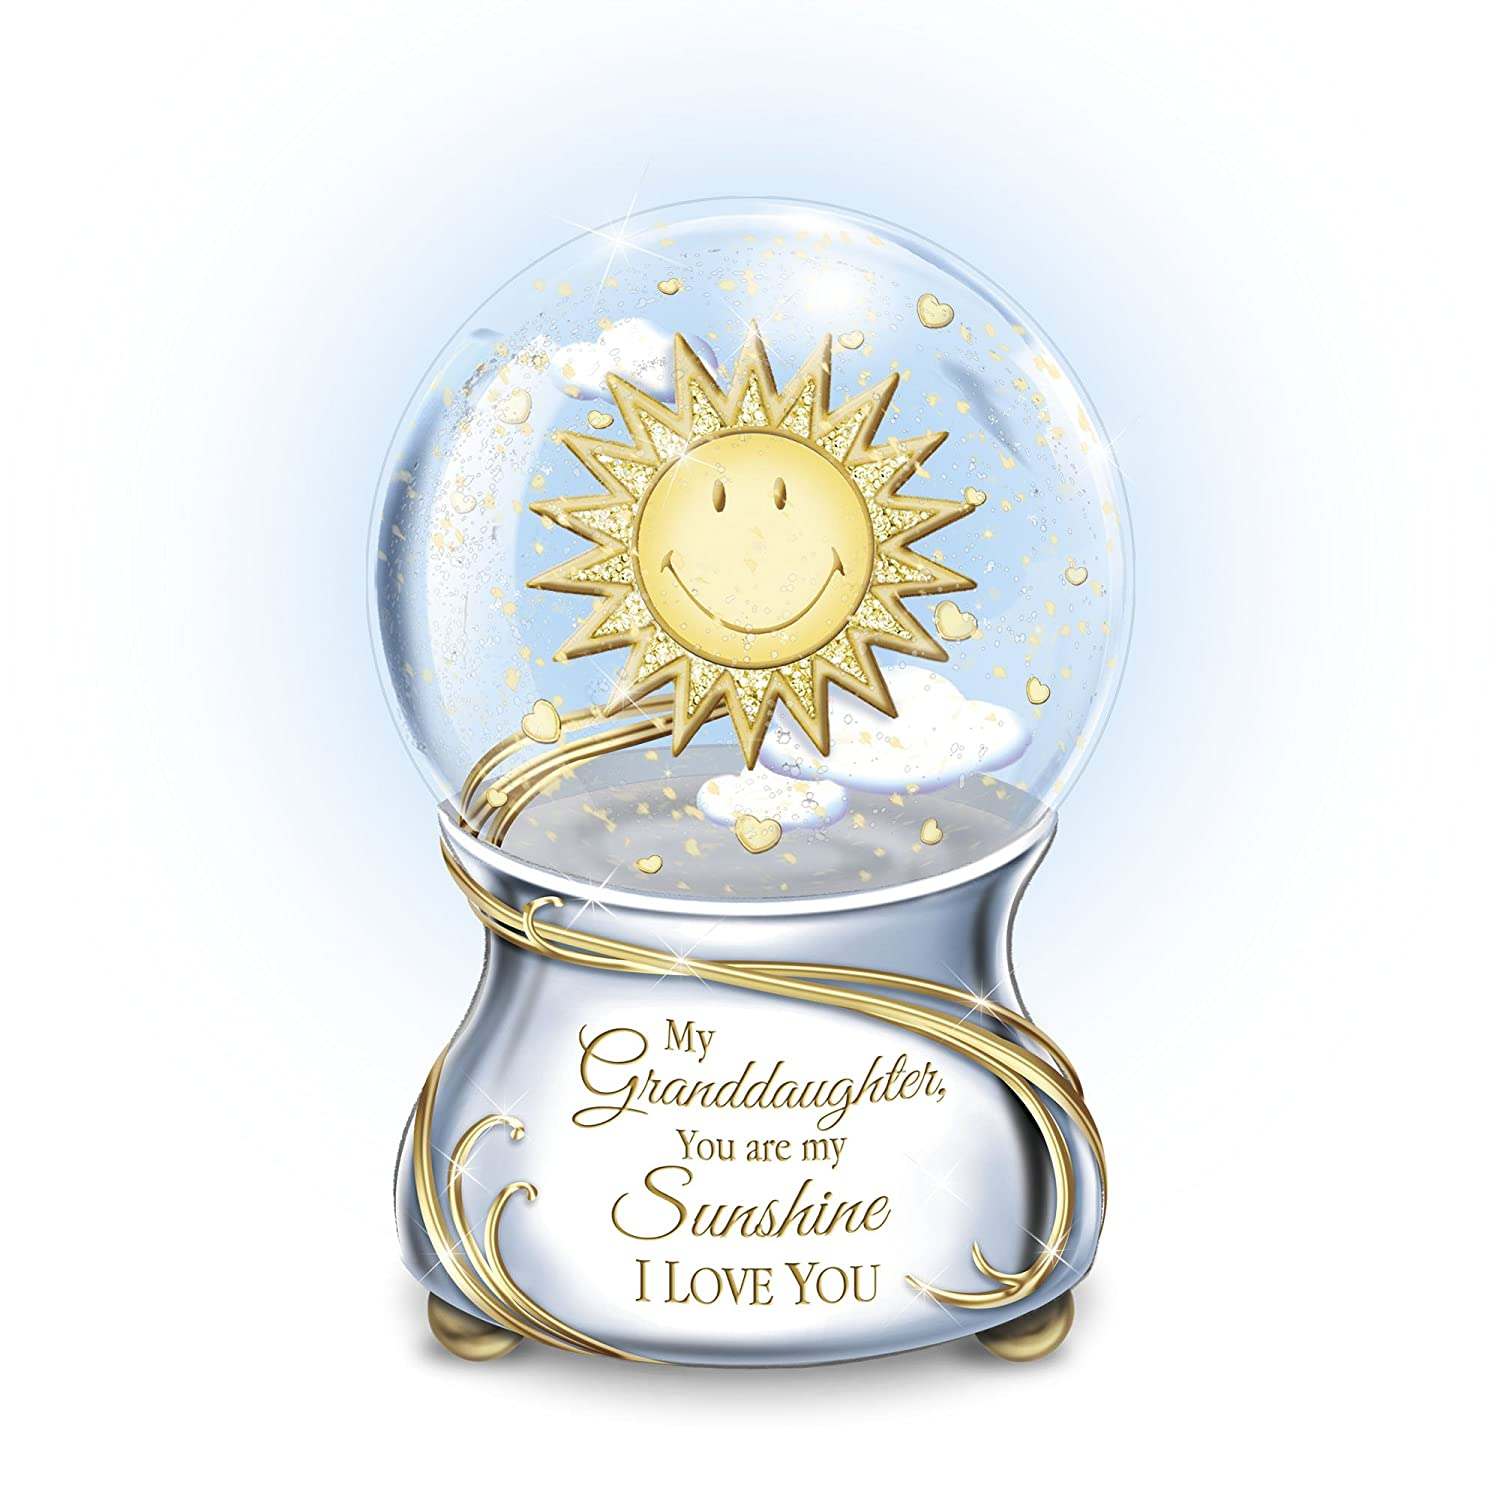 'My Granddaughter, You Are My Sunshine' Musical Glitter Globe – Granddaughter-inspired musical glitter globe features smiling sun, swirling glitter, loving message. Exclusive to The Bradford Exchange! 'My Granddaughter